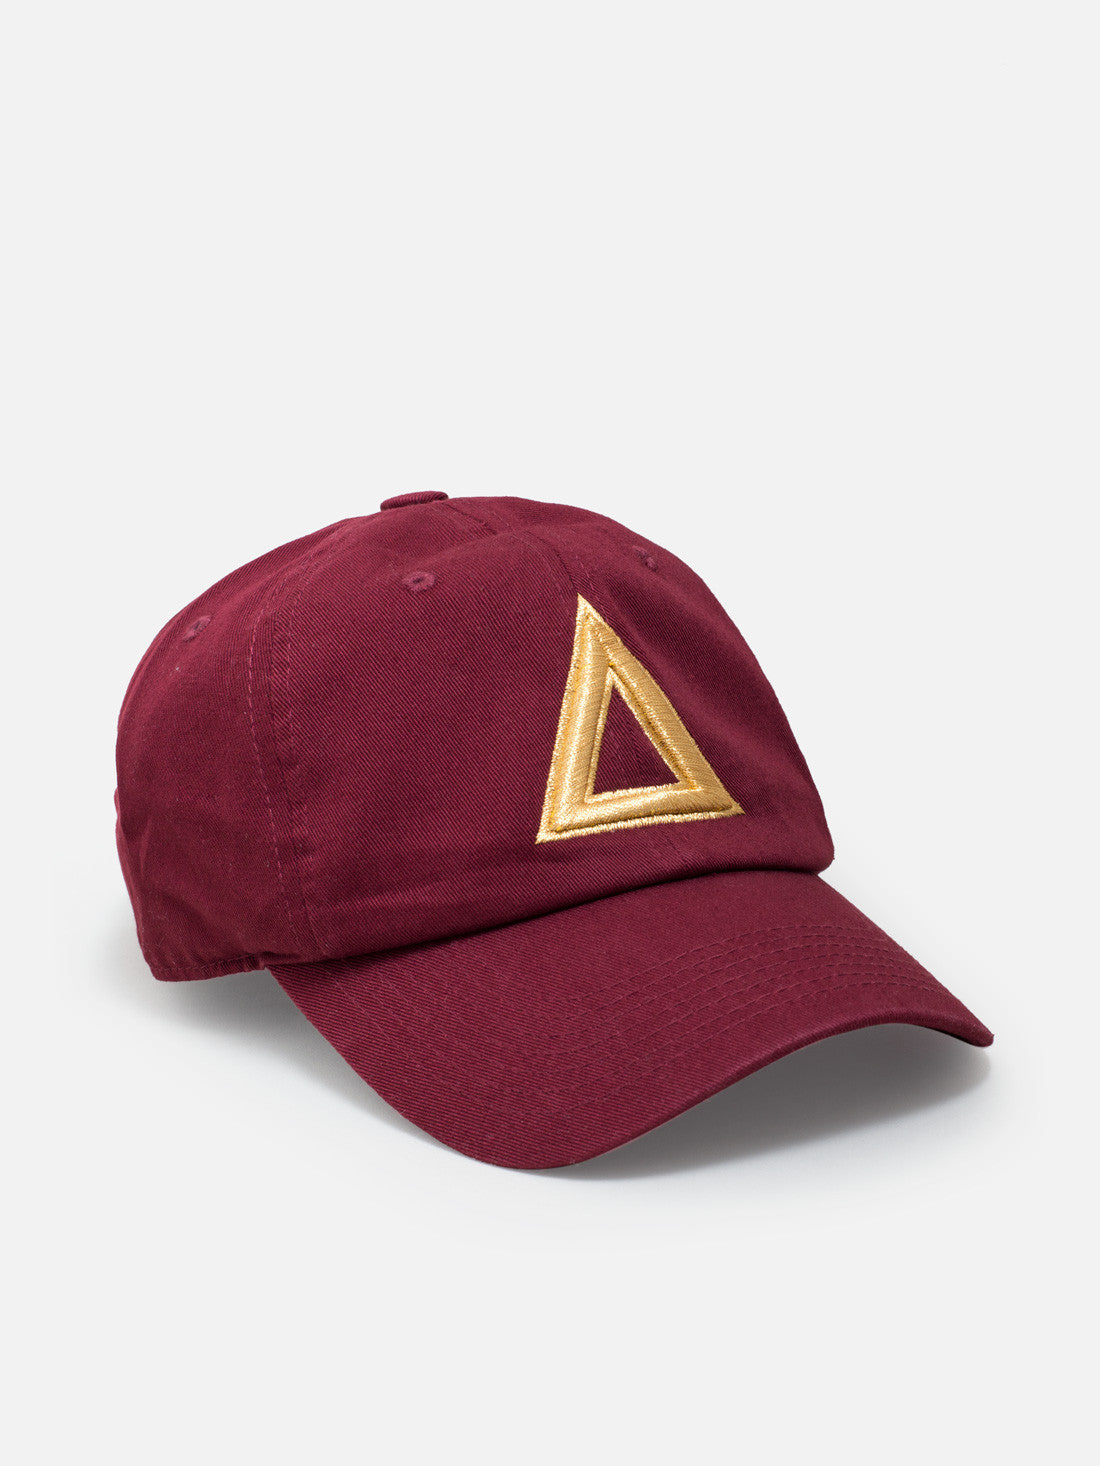 Dad hat Burgundy - gold tri1